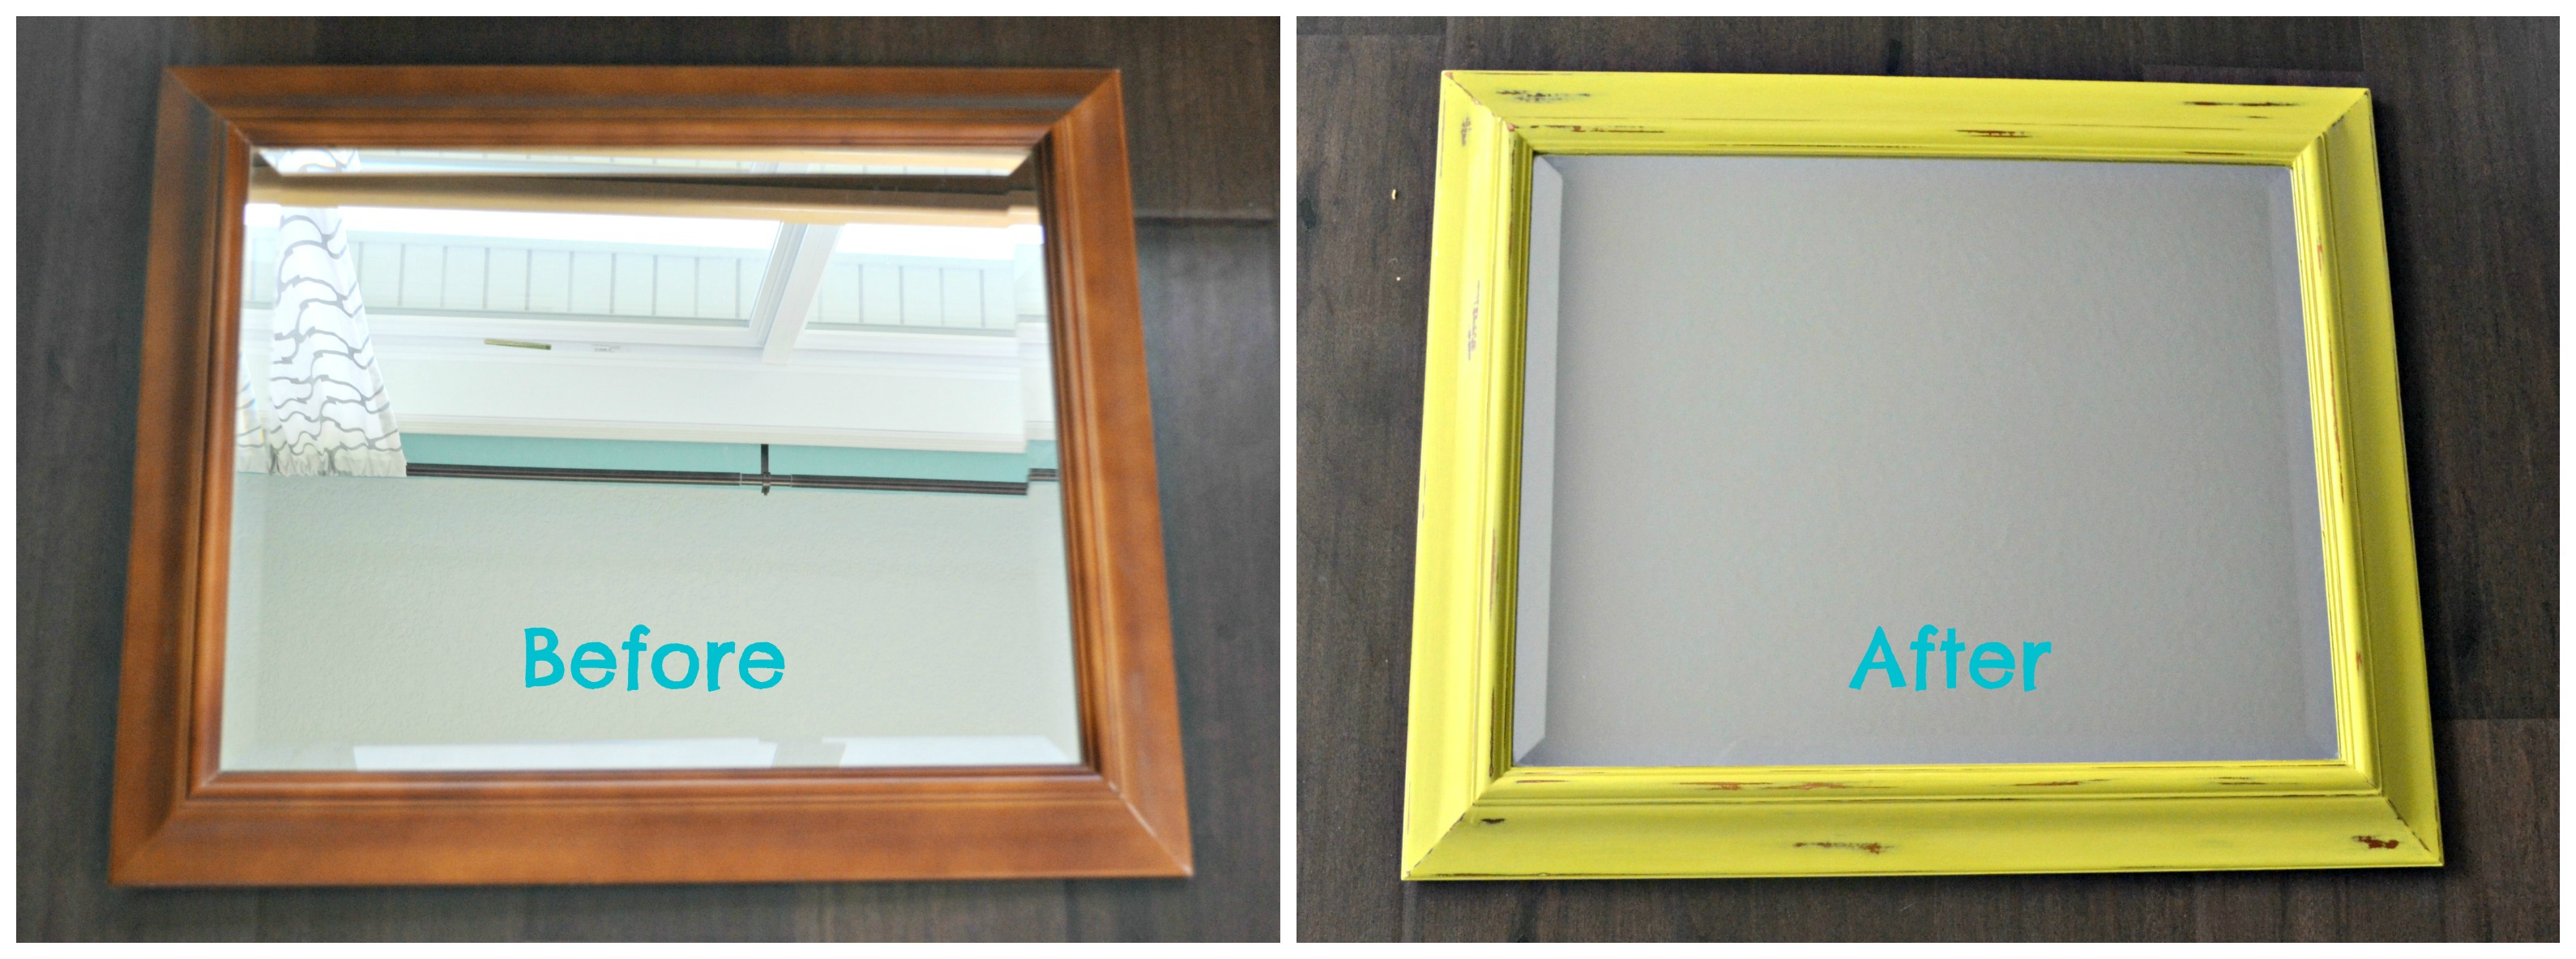 Diy Painted Mirror Frame. I Diy Painted Mirror Frame - Akiliboon.co